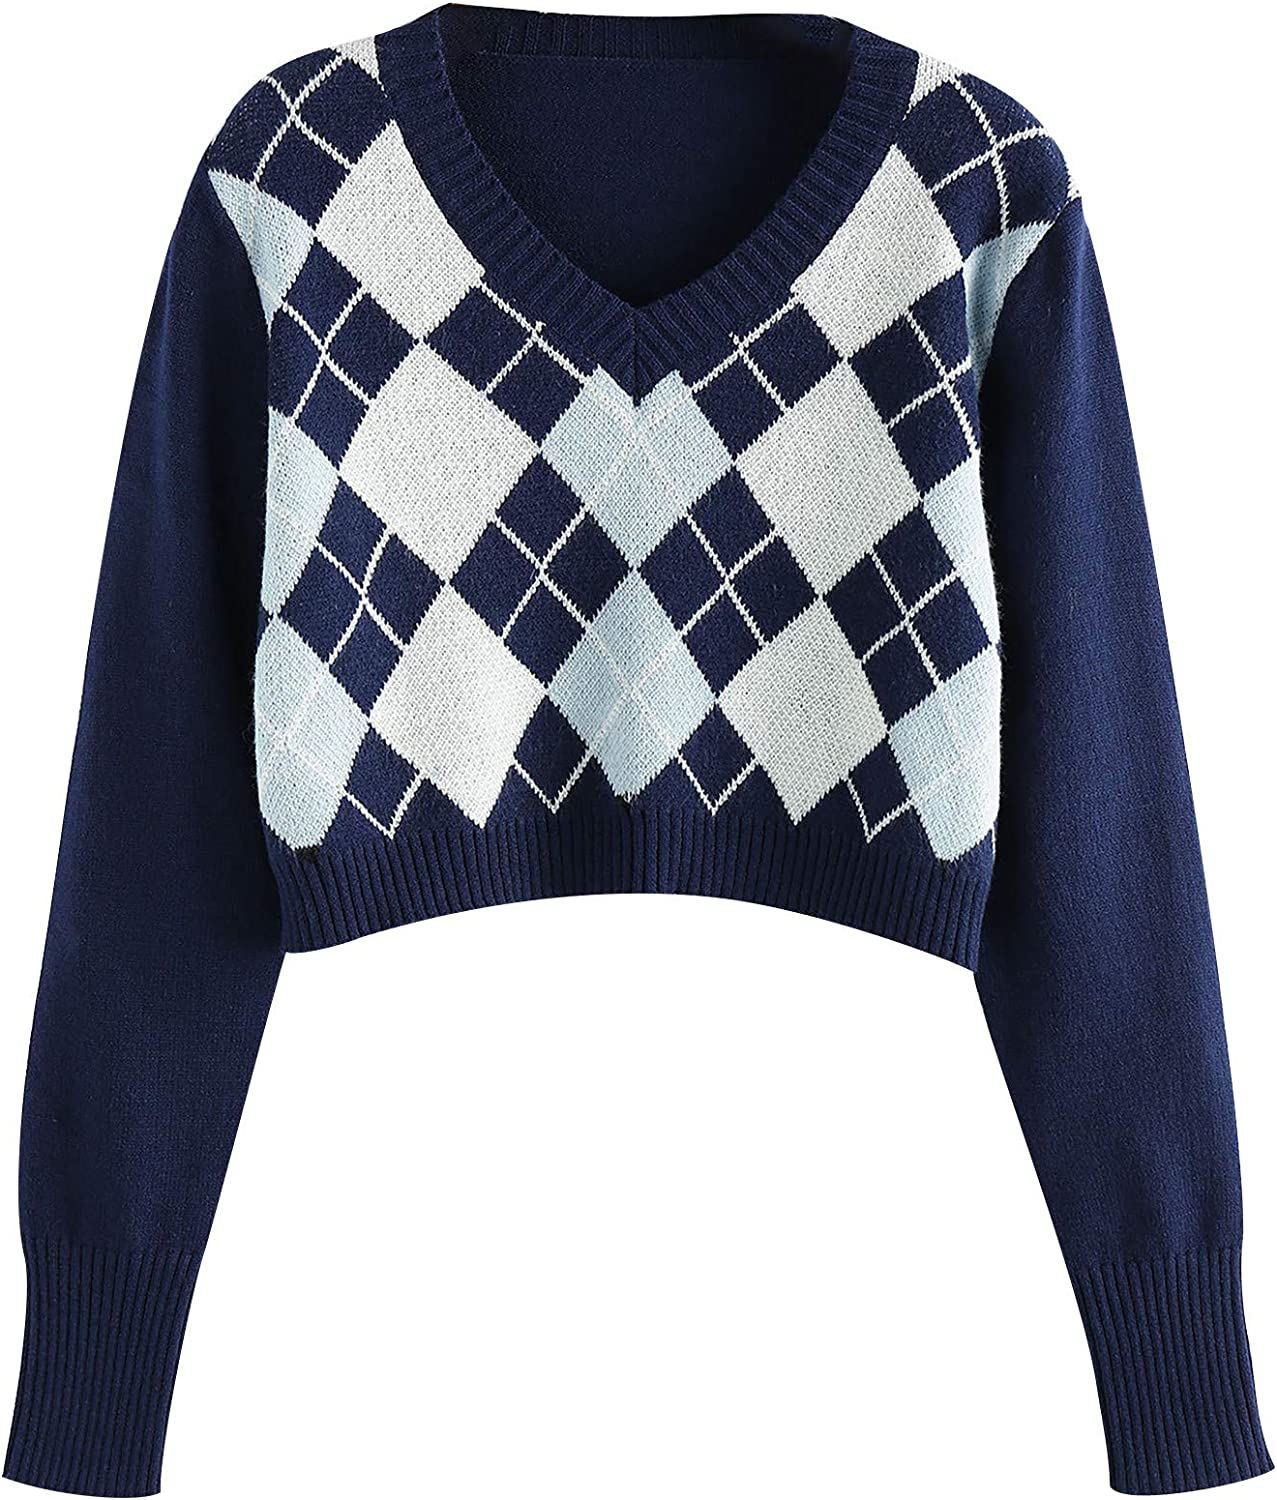 Sweaters for Women half Casual Sales results No. 1 Argyle Long Sleeve Leisure Vin Pattern